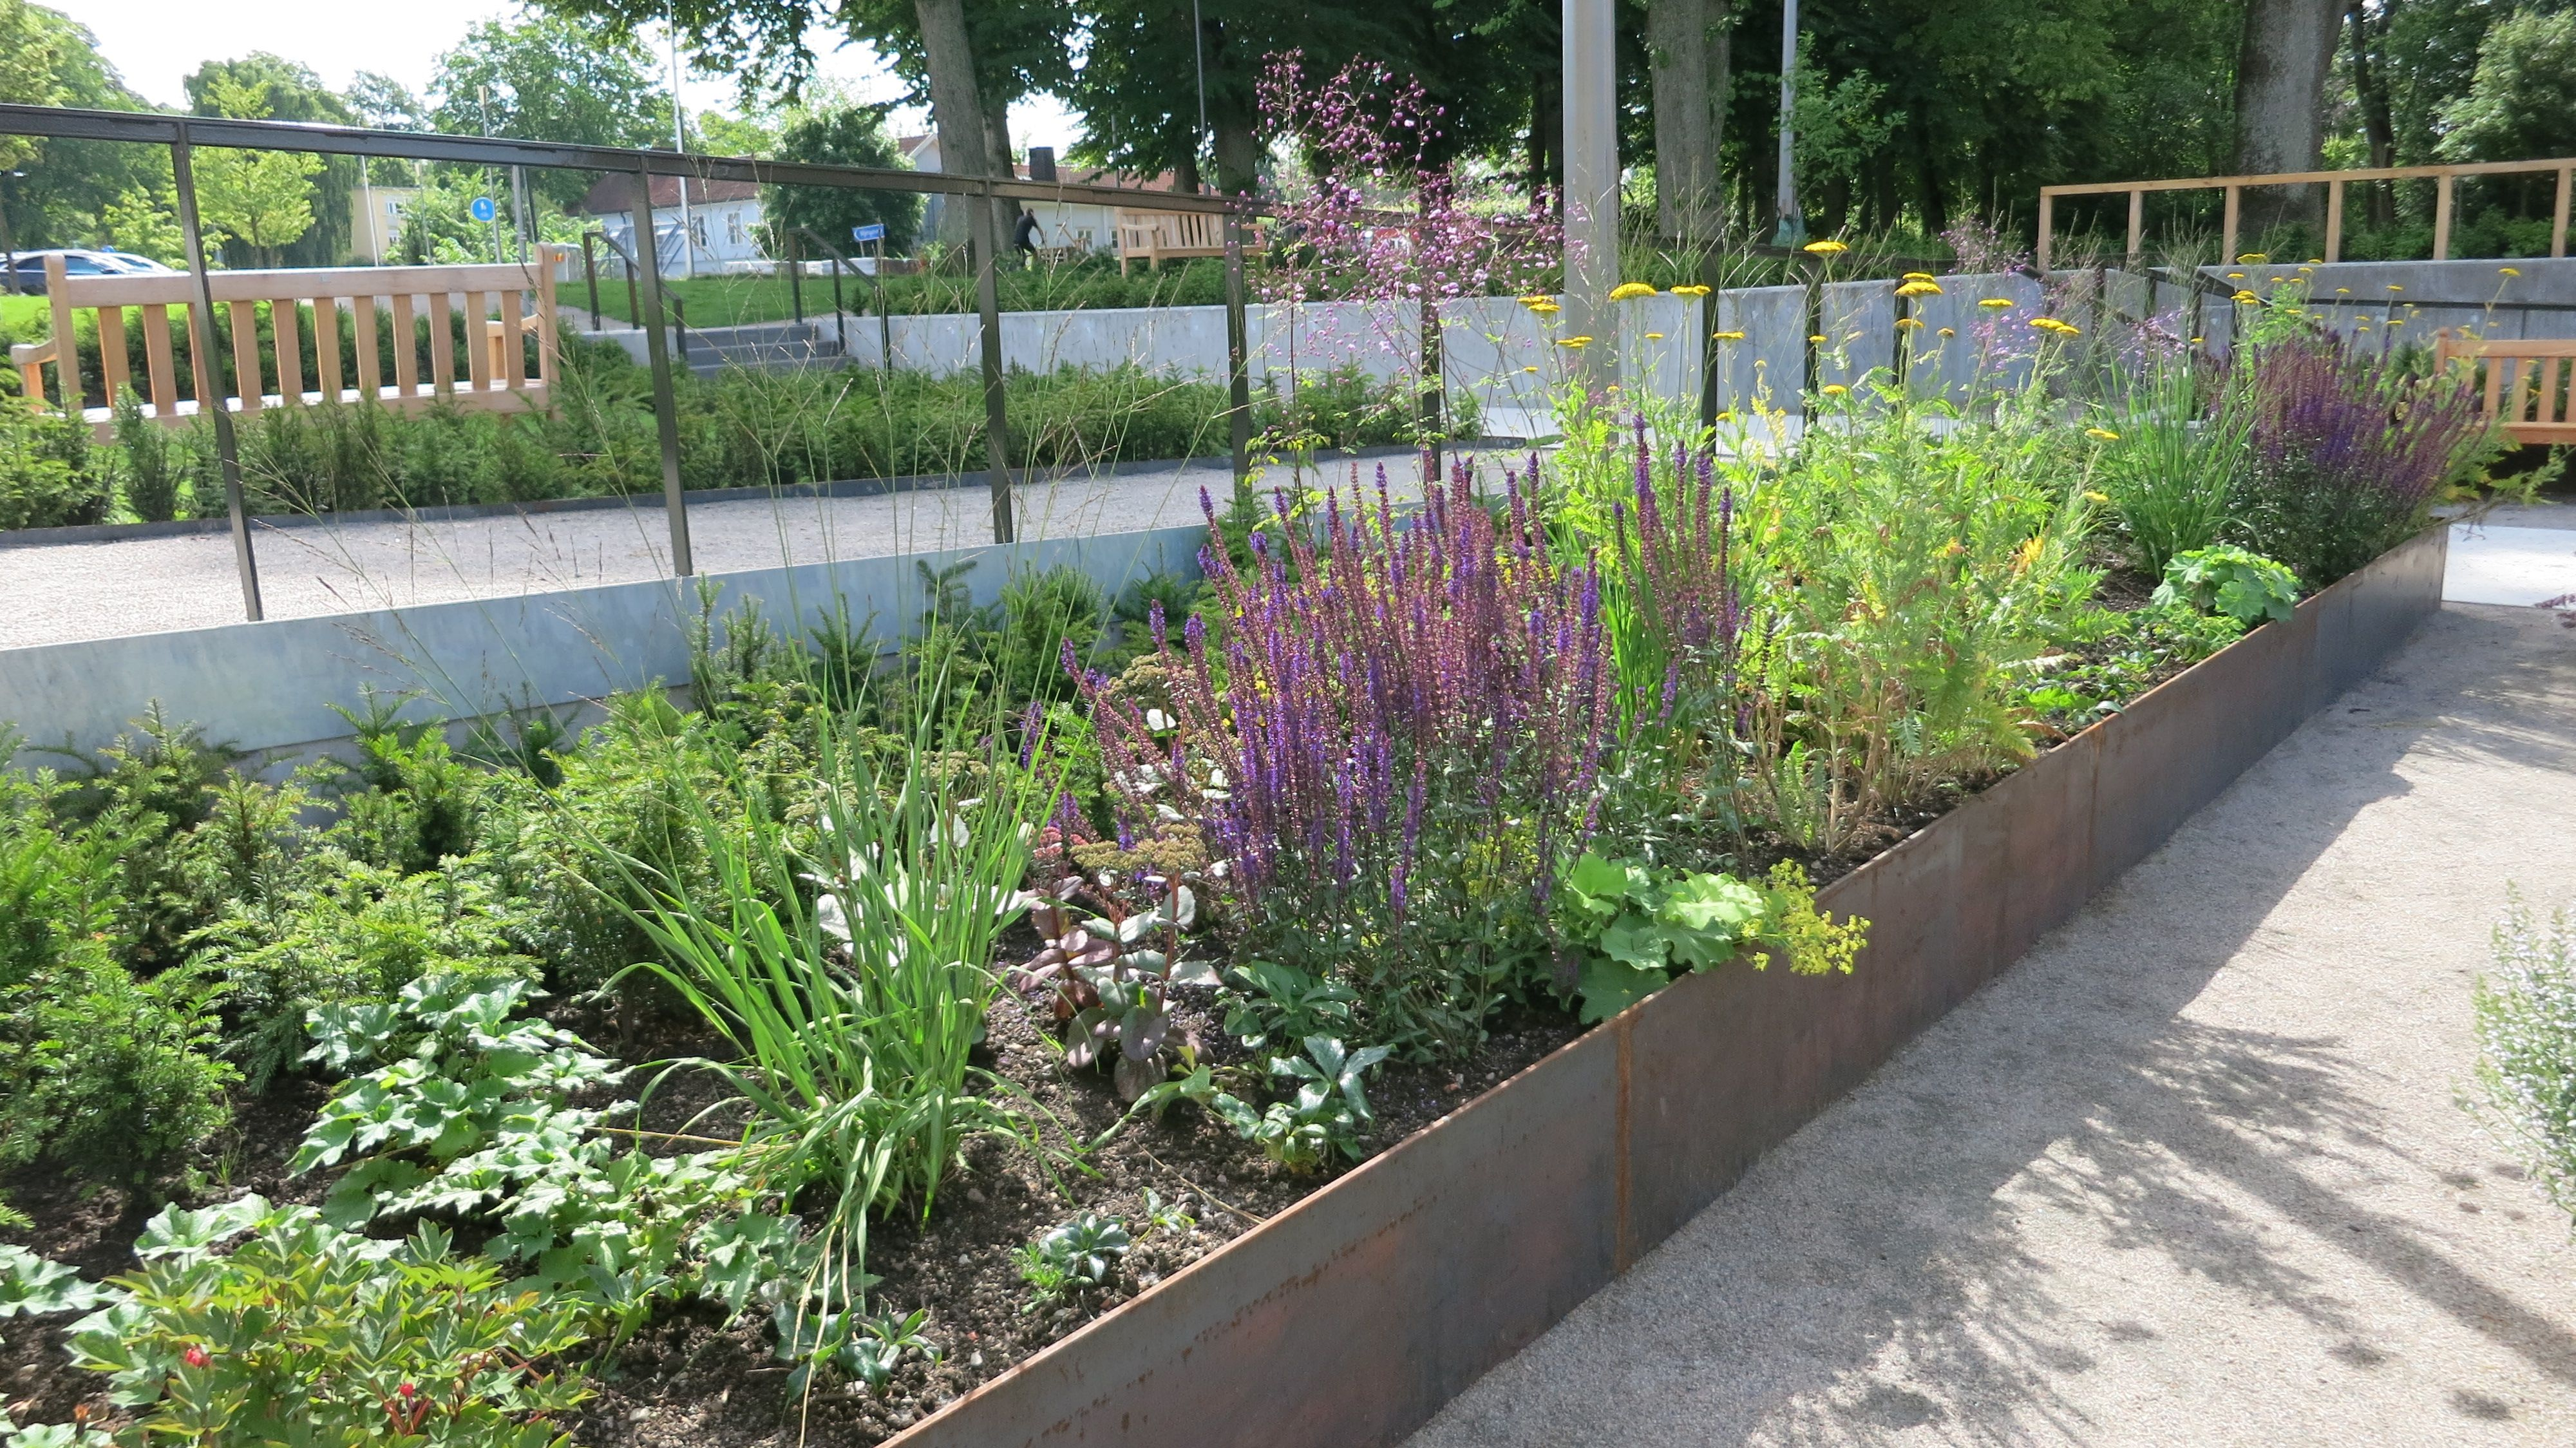 Mixed Border Elevated In 30 Inch Deep Planter Box Public Space